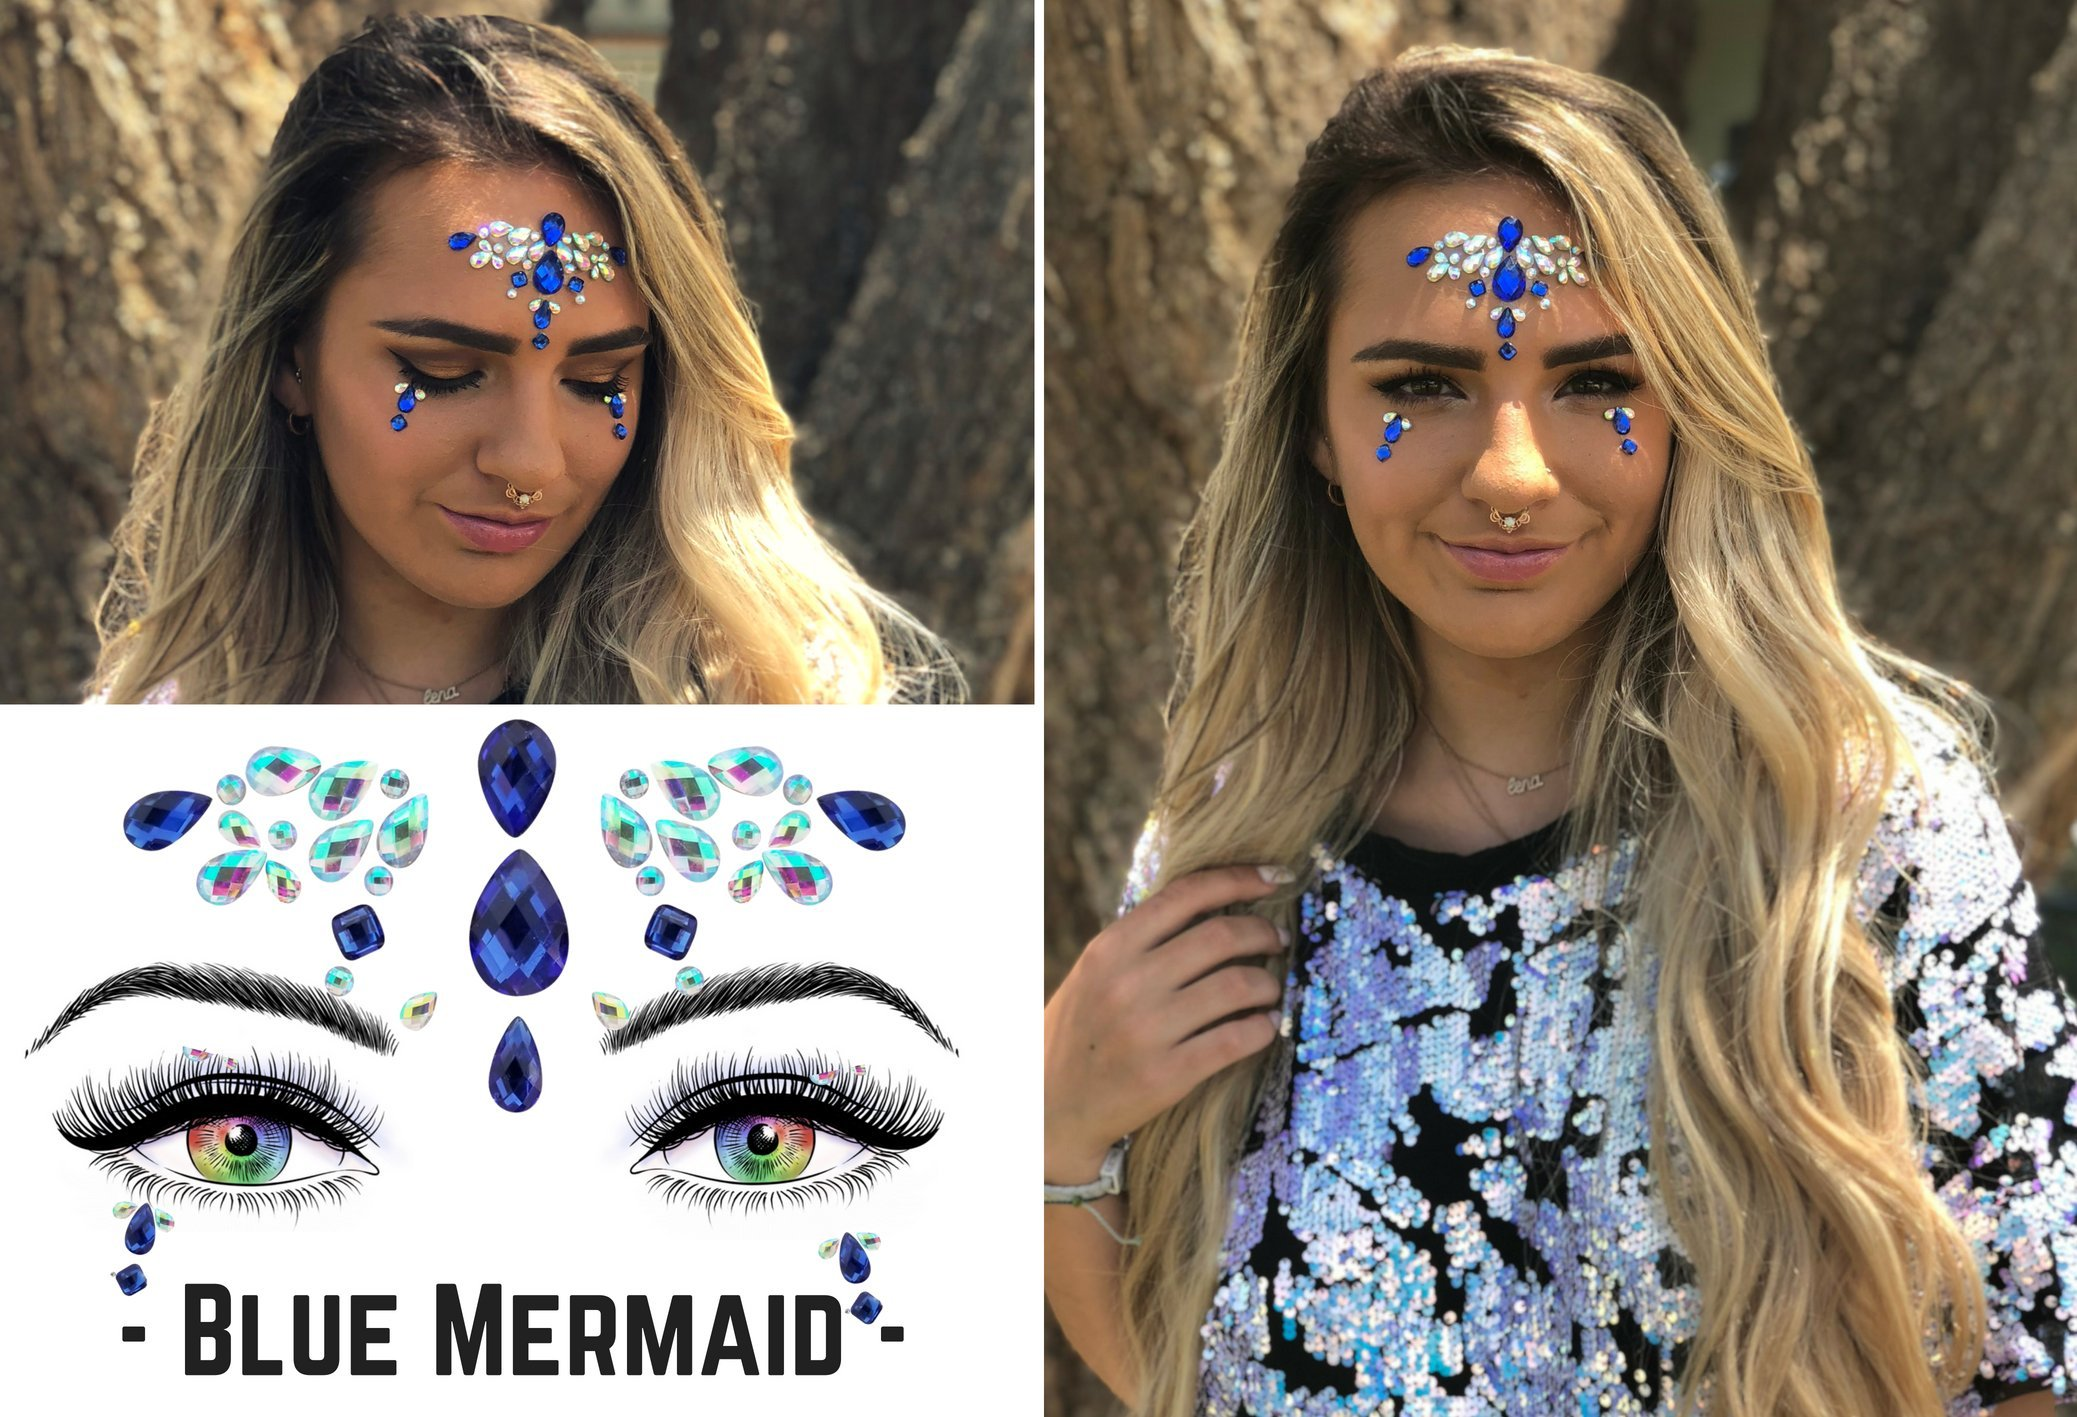 6 Stick On Face Jewels Sets, Gems, Glitter, Gem-Stones, Rhinestones Stickers, Temporary Tattoo - Self-Adhesive, Bindi, Indian, Mermaid Crystals. Accessories For Body, Women, Festivals, Rave, or Party by Luxxe Hour (Image #5)